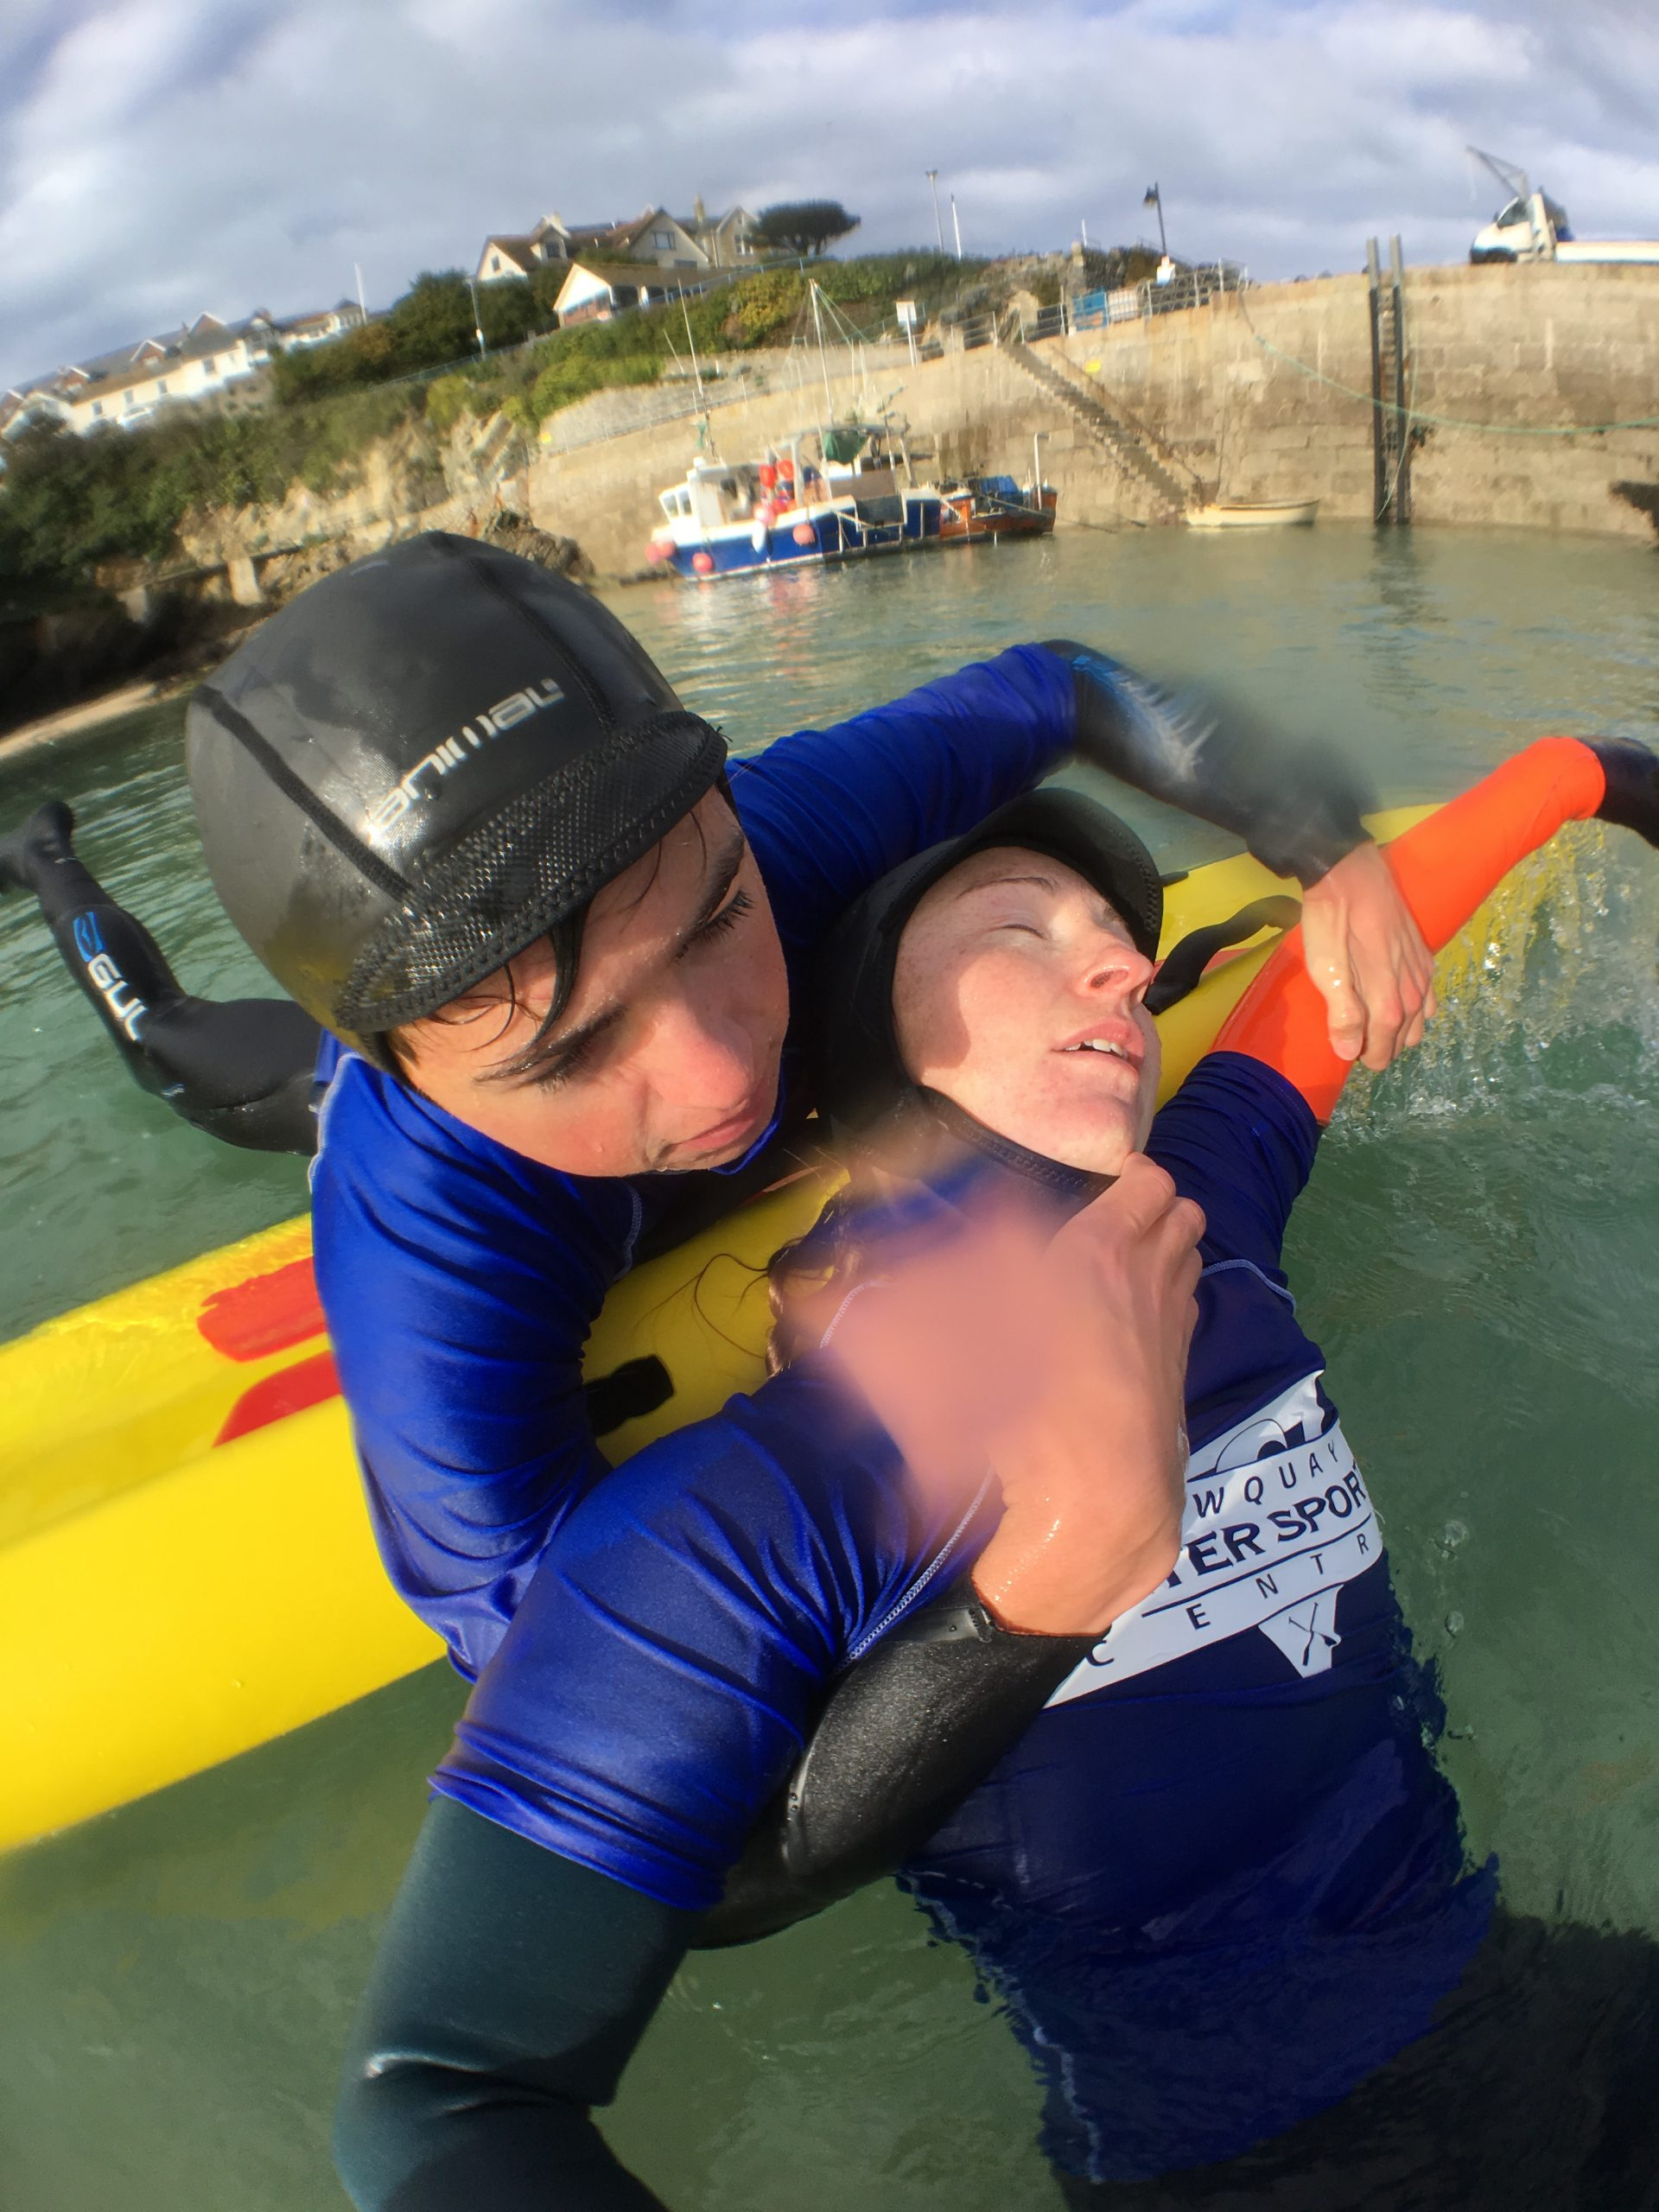 Lifeguard Course at Newquay Water sports centre